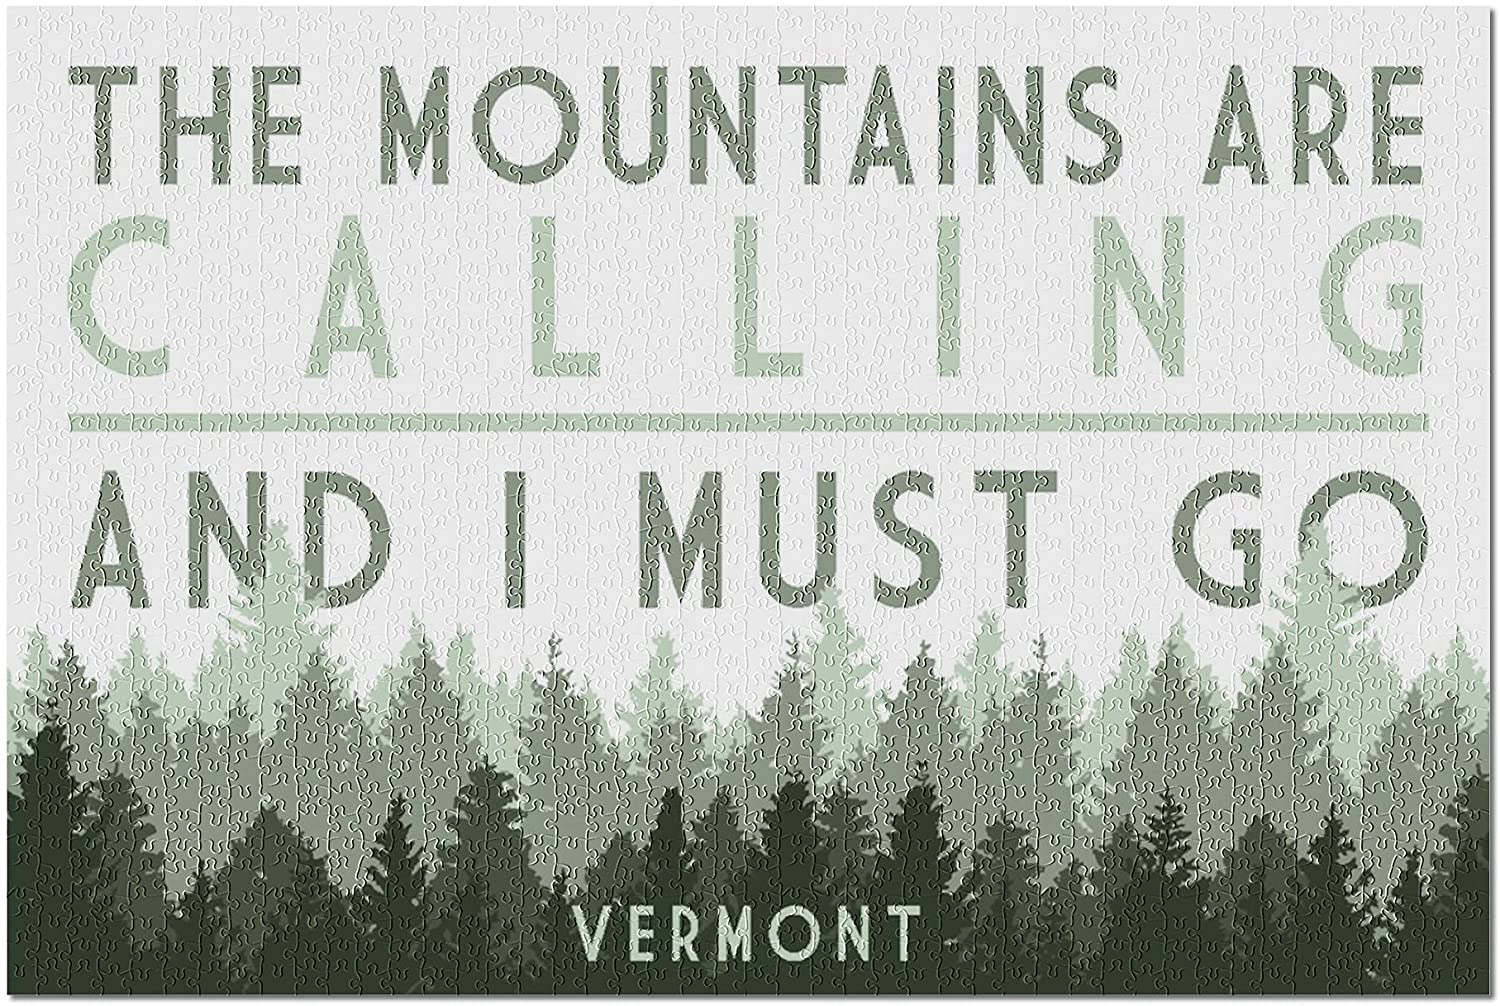 Vermont - The Mountains are Calling - Pine Trees 97027 (Premium 1000 Piece Jigsaw Puzzle for Adults, 19x27)